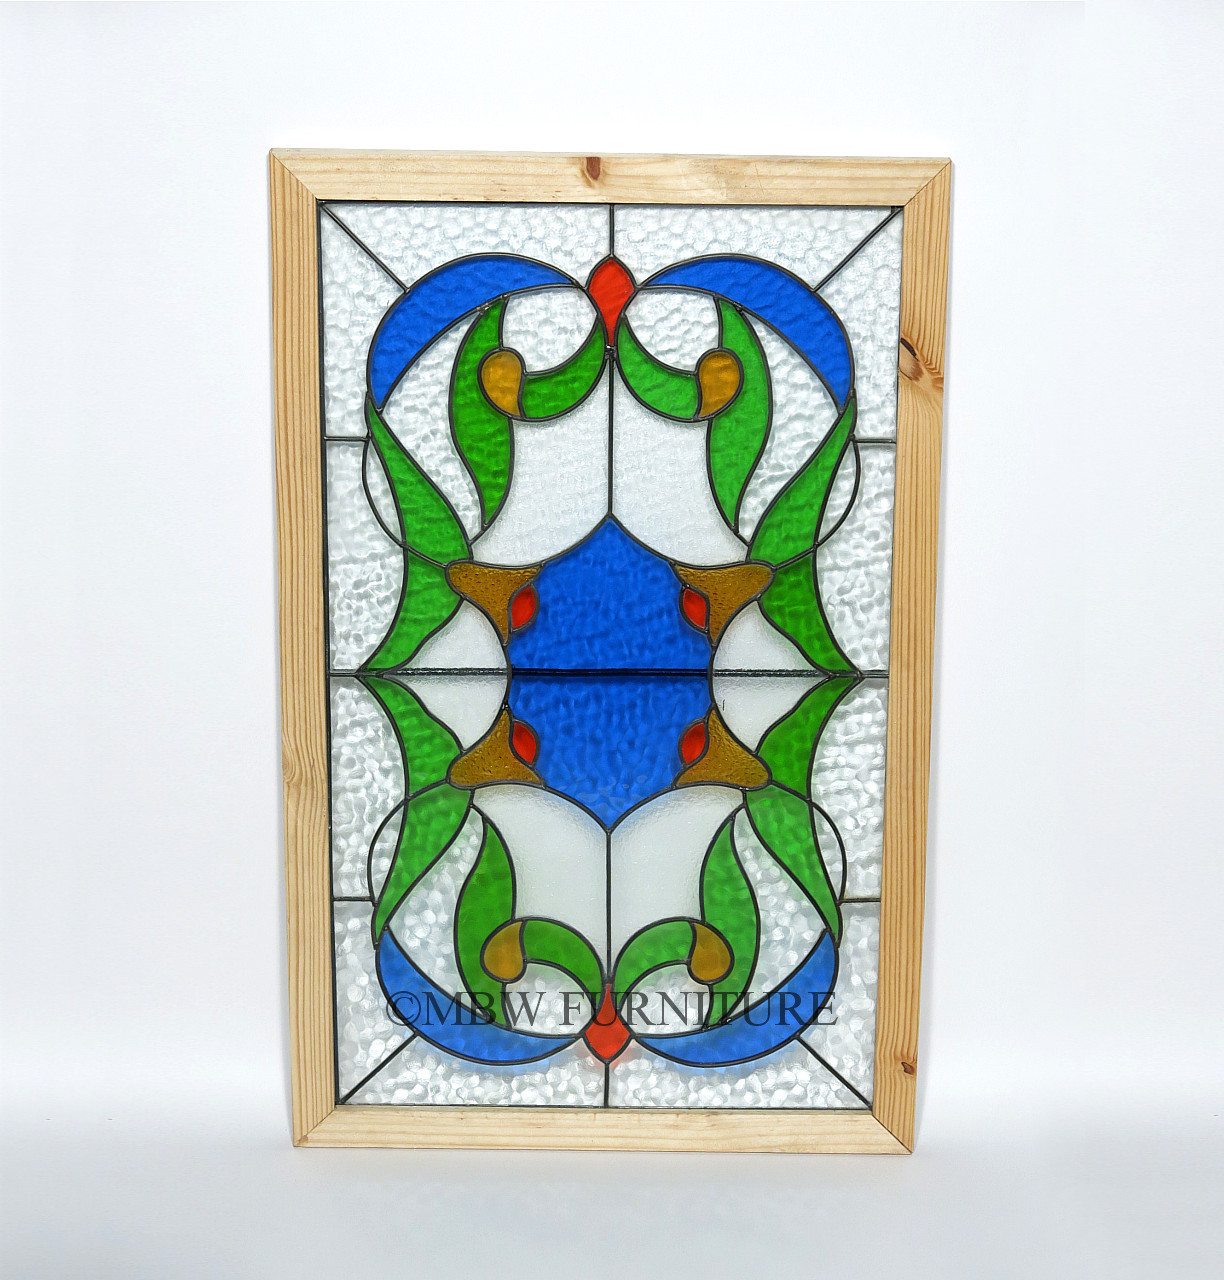 32in x 19in floral leaded stained window glass frame panel